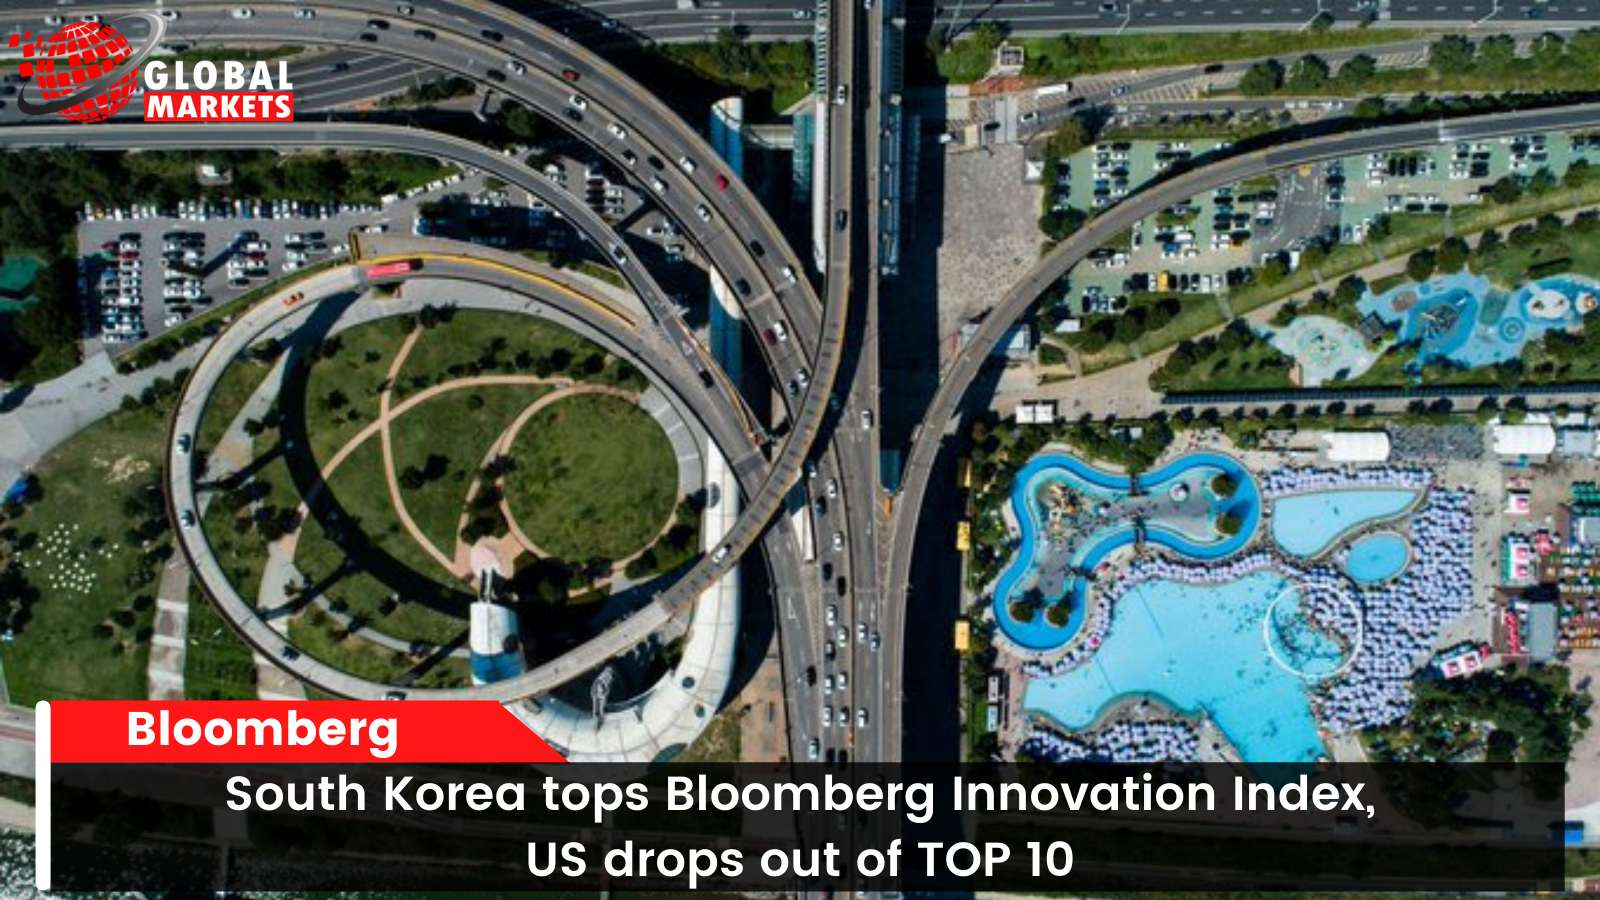 South Korea tops Bloomberg Innovation Index, US drops out of TOP 10